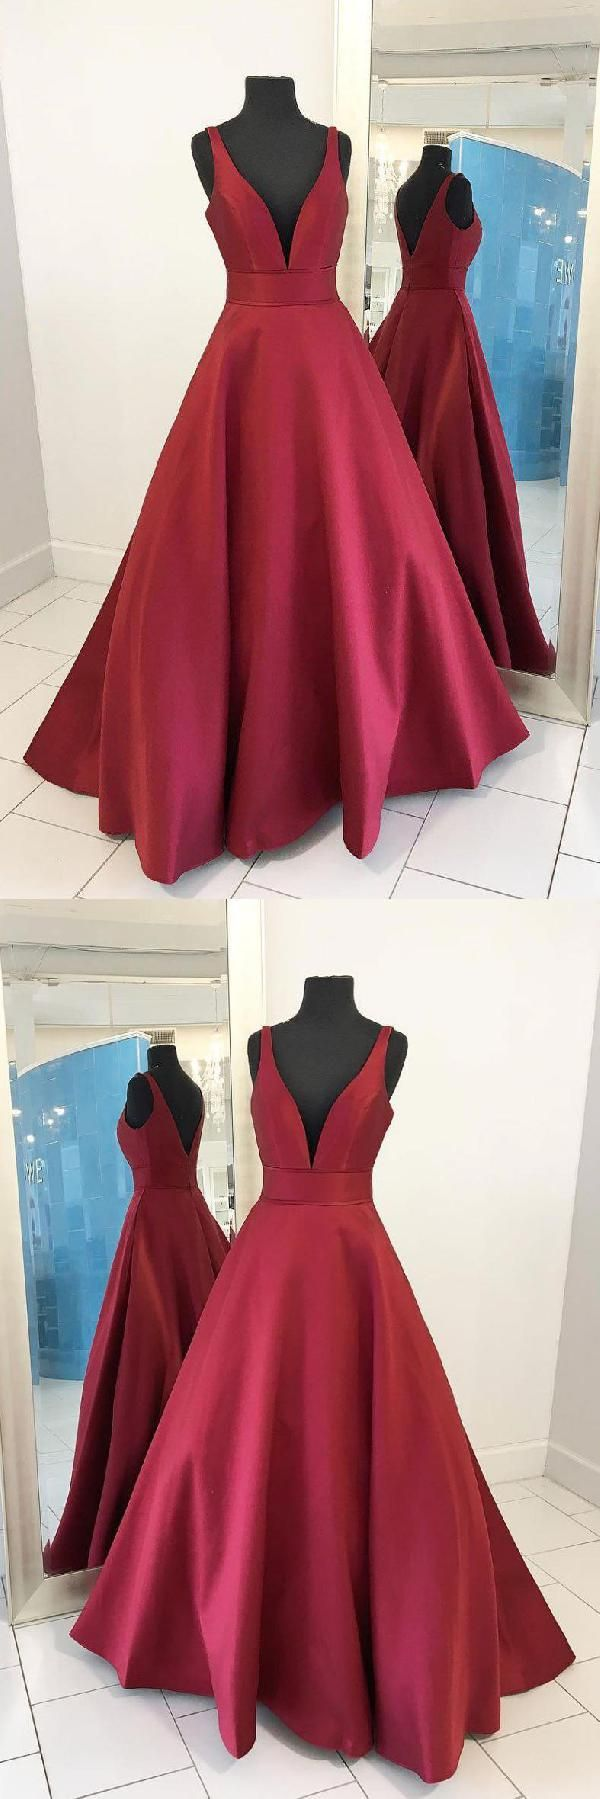 Long prom dresses prom dresses red simple prom dresses dress